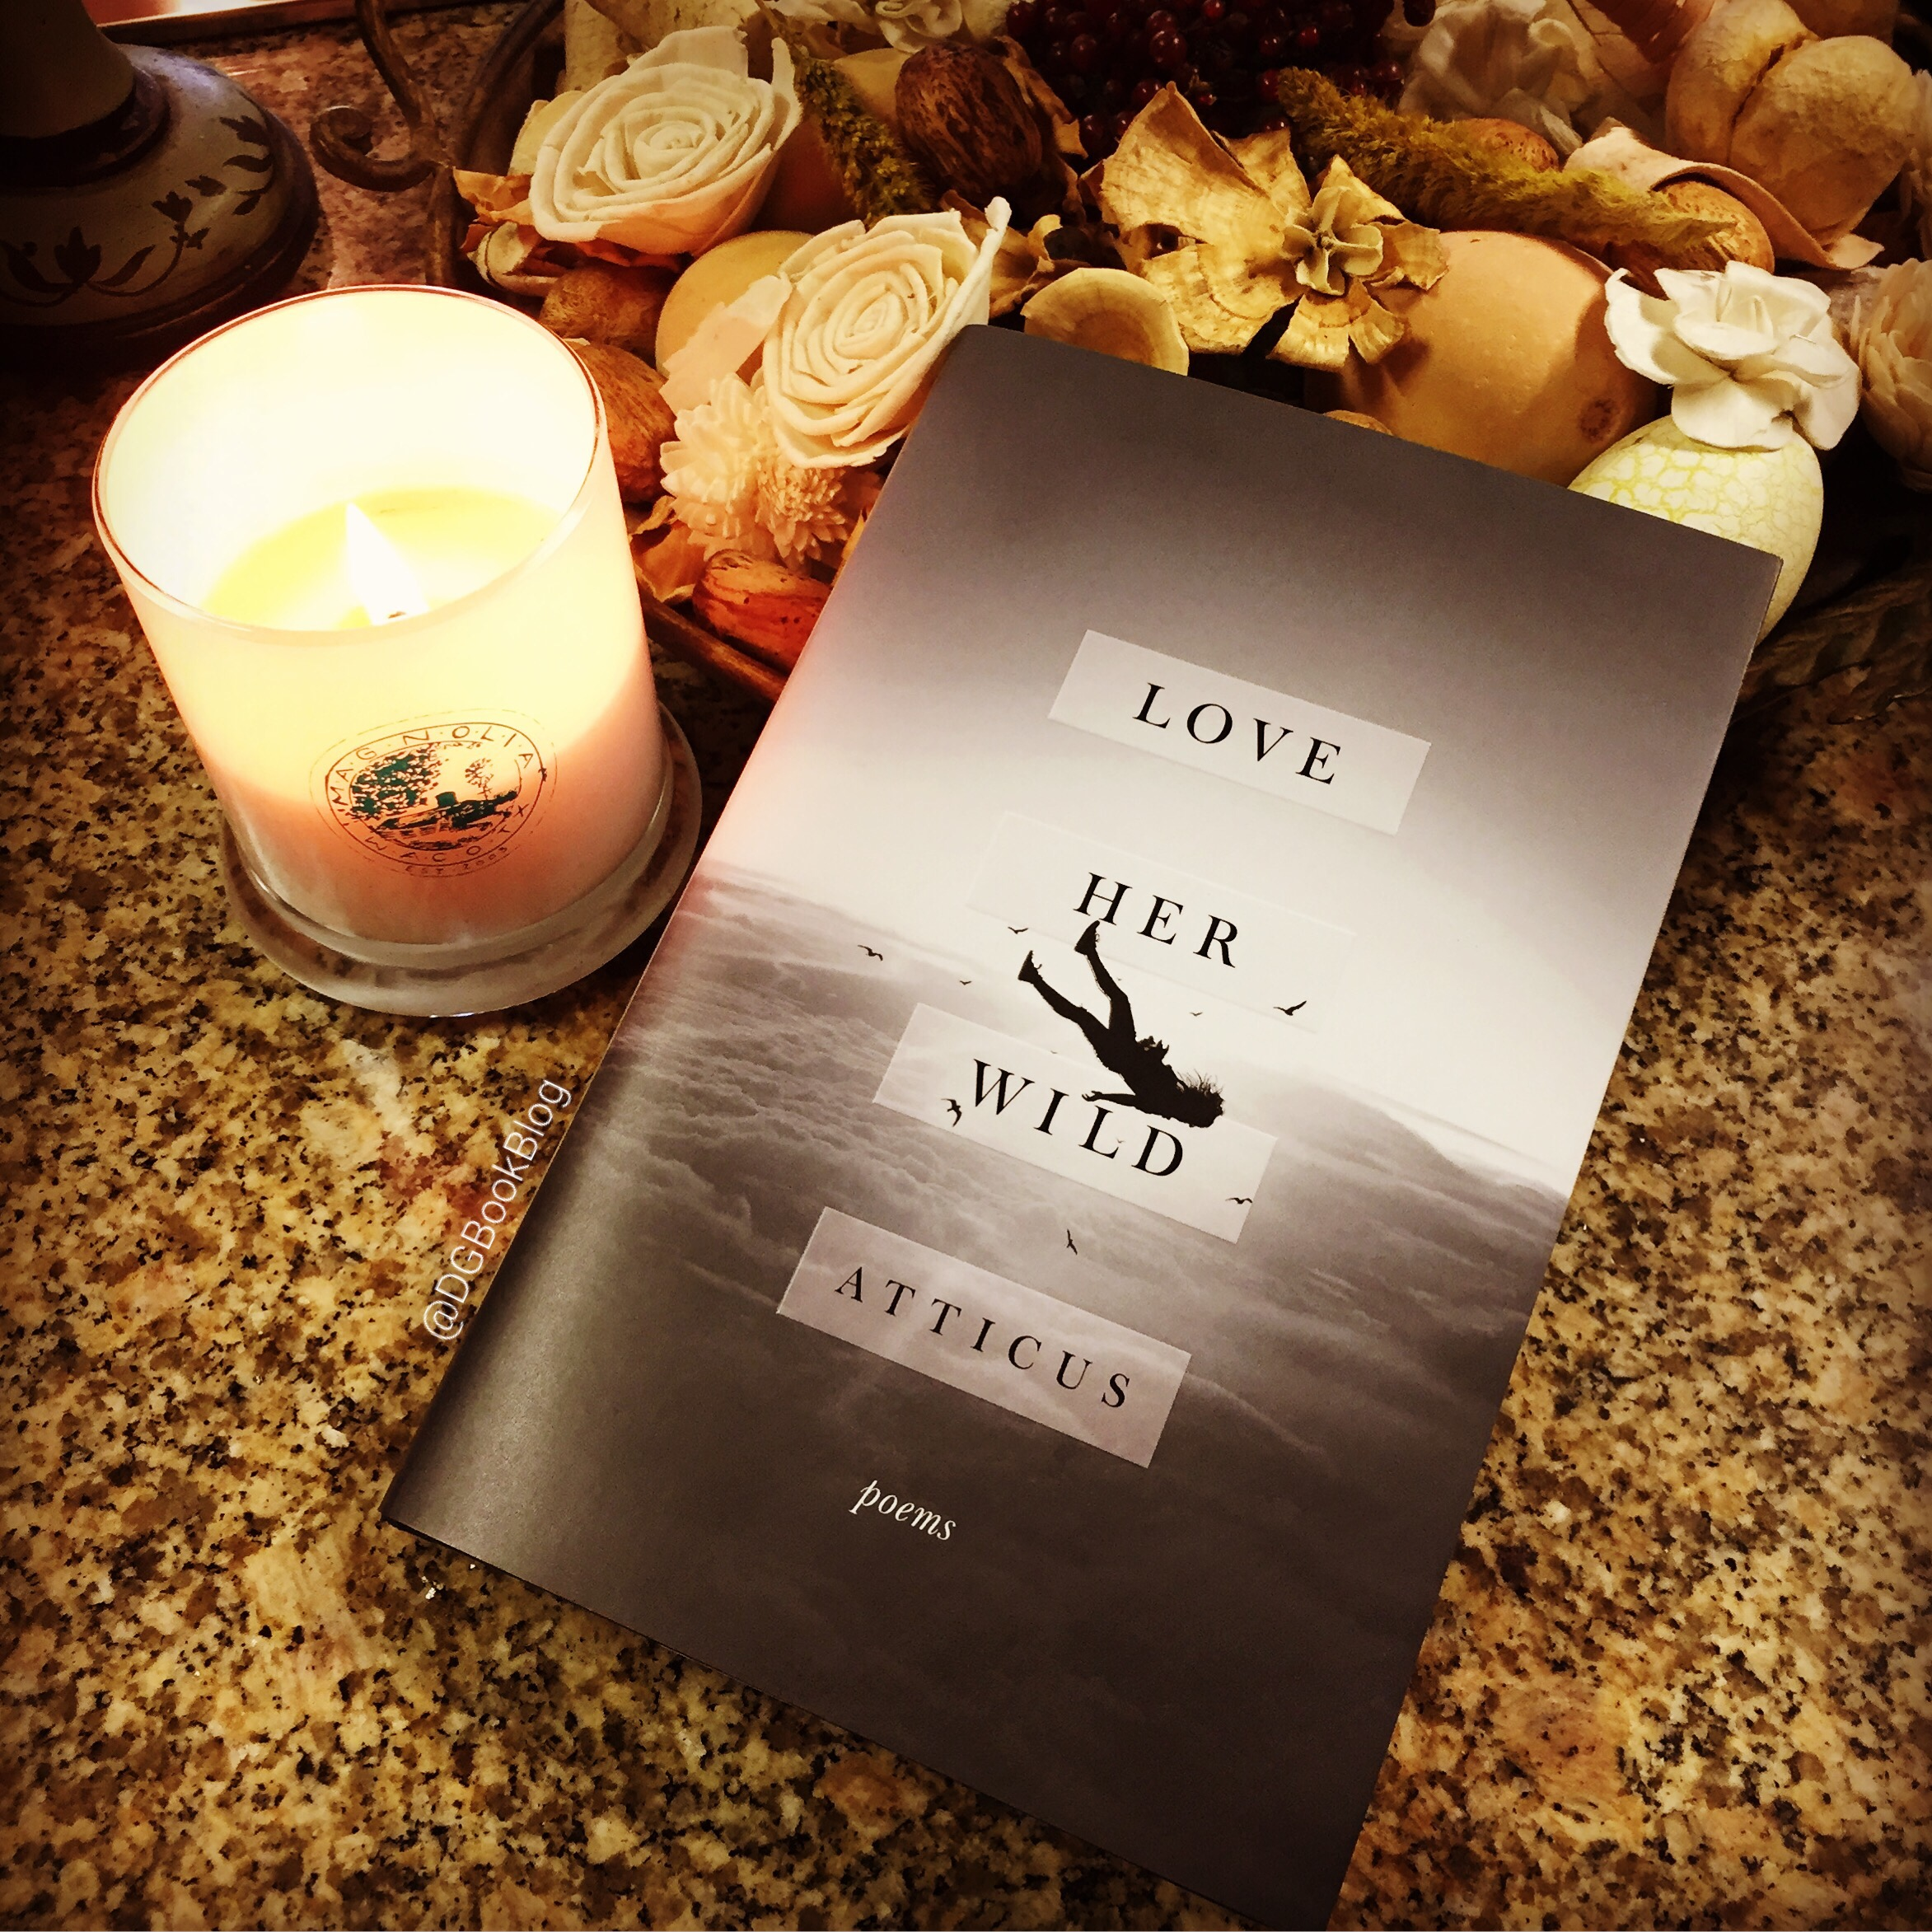 Review Of Love Her Wild Poems By Atticus Dg Book Blog